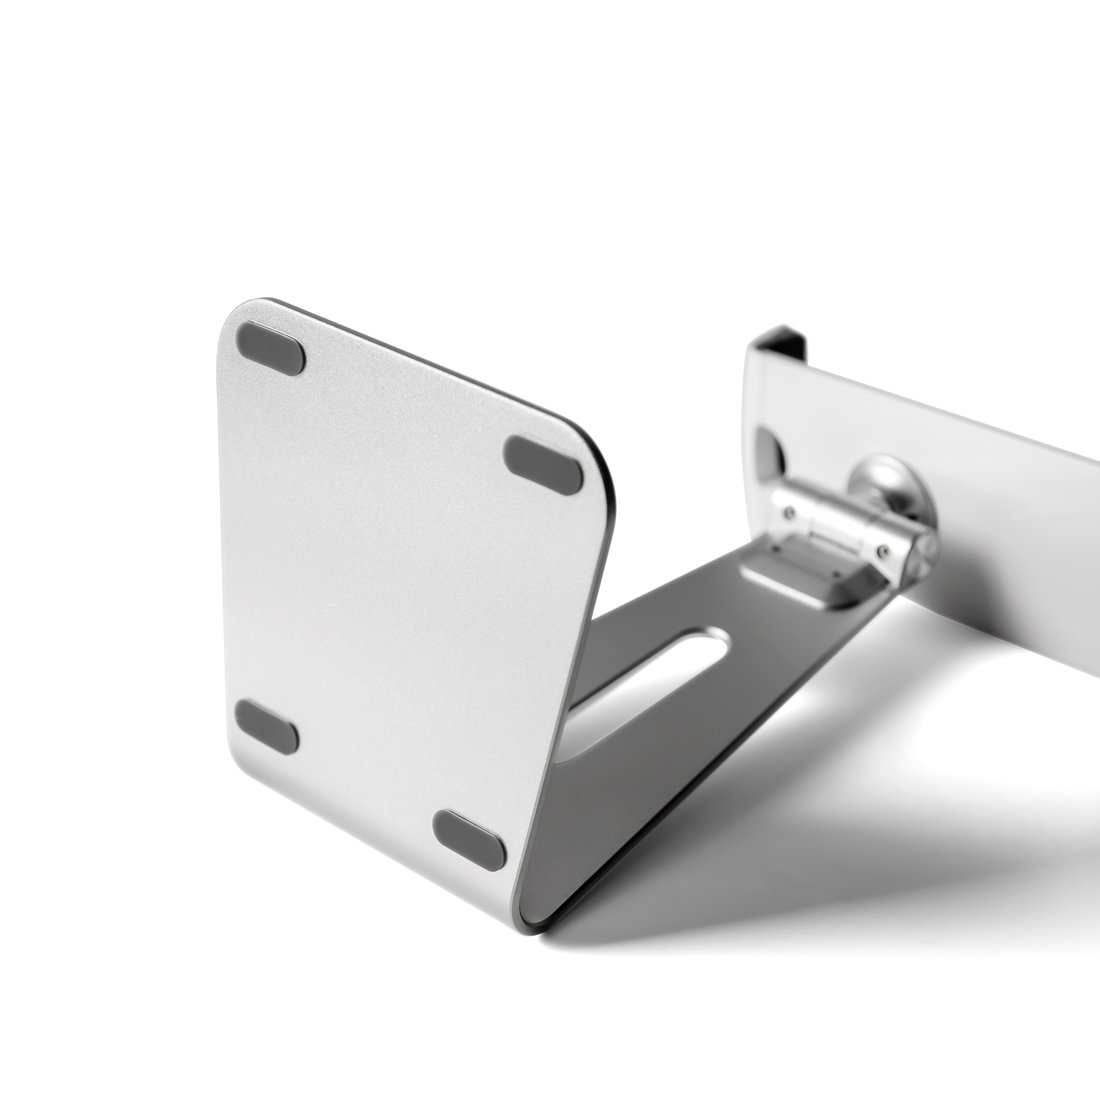 Viozon ipad Pro Stand, Tablet Stands 360° Rotatable Aluminum Alloy Desktop Mount Stand for Ipad Pro Ipad Air Ipad Mini Surface and Surface Pro by Viozon (Image #9)